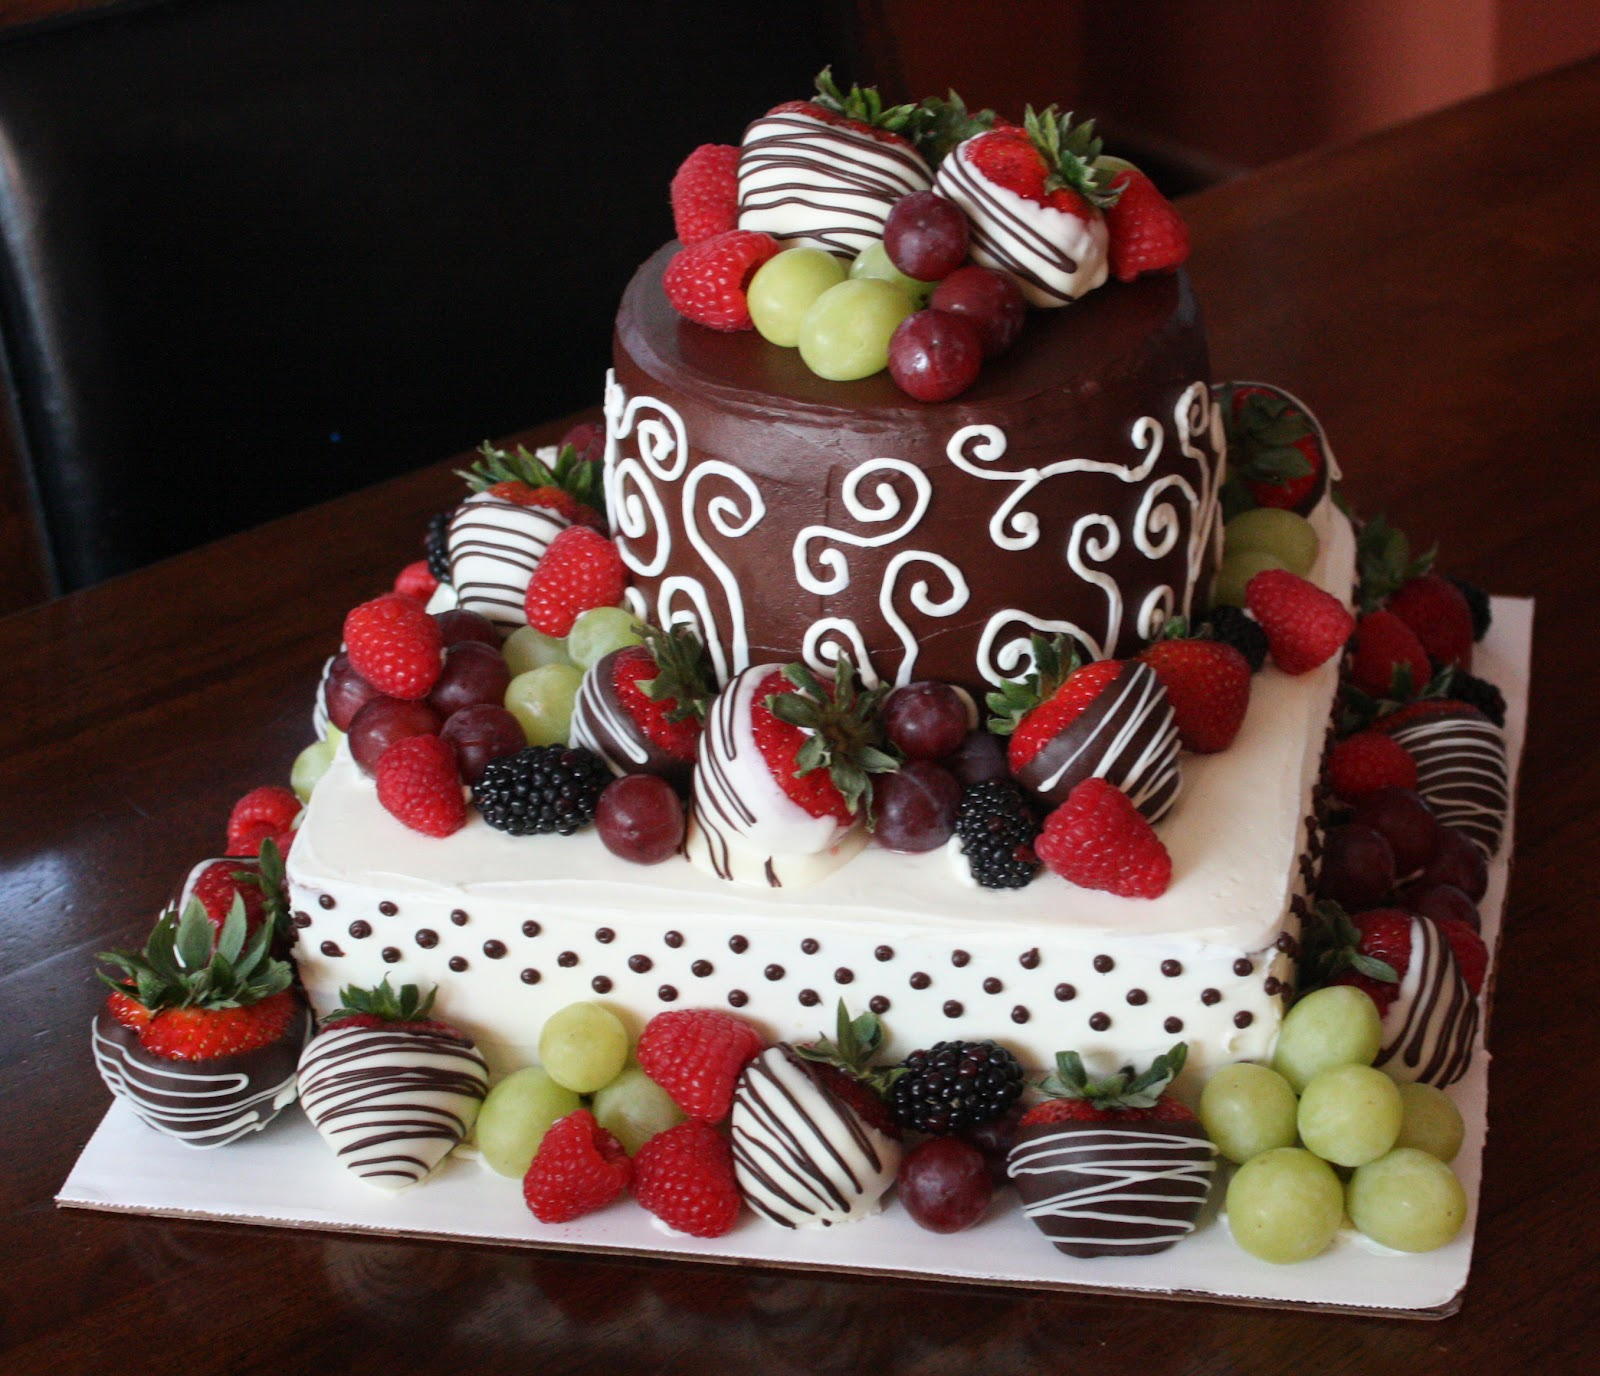 Chocolate Birthday Cake With Strawberries